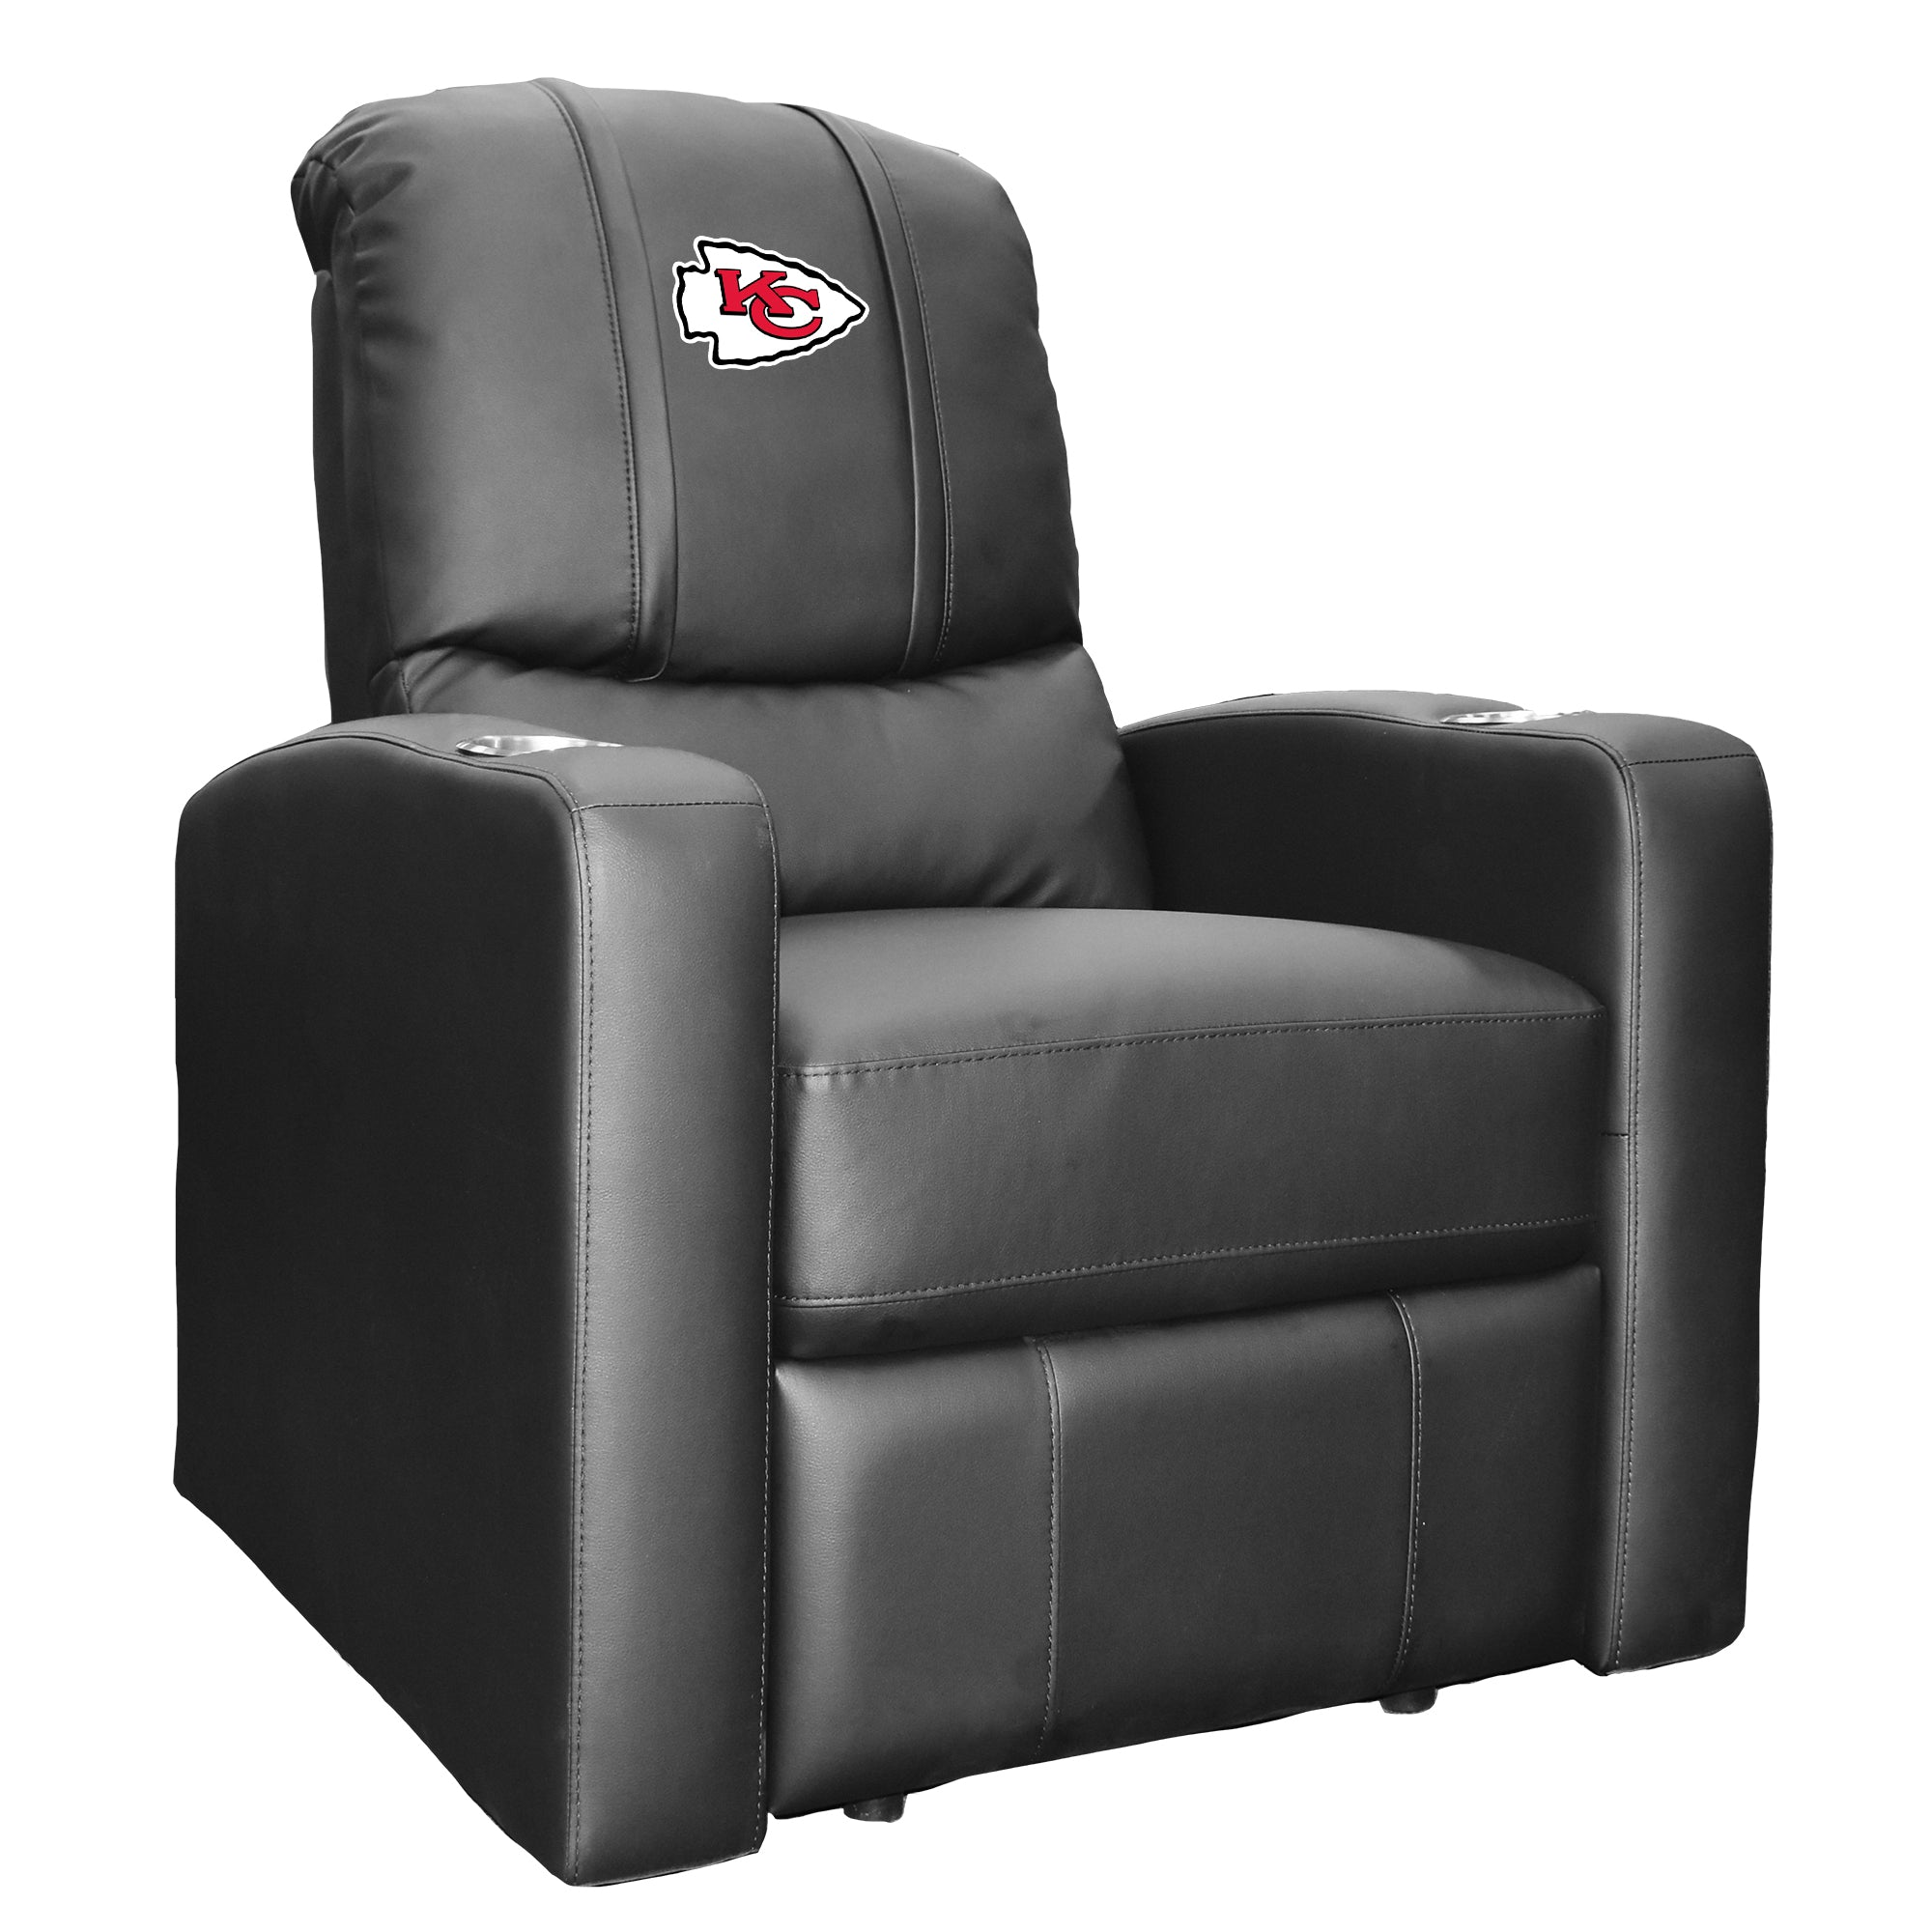 Stealth Recliner with  Kansas City Chiefs Primary Logo